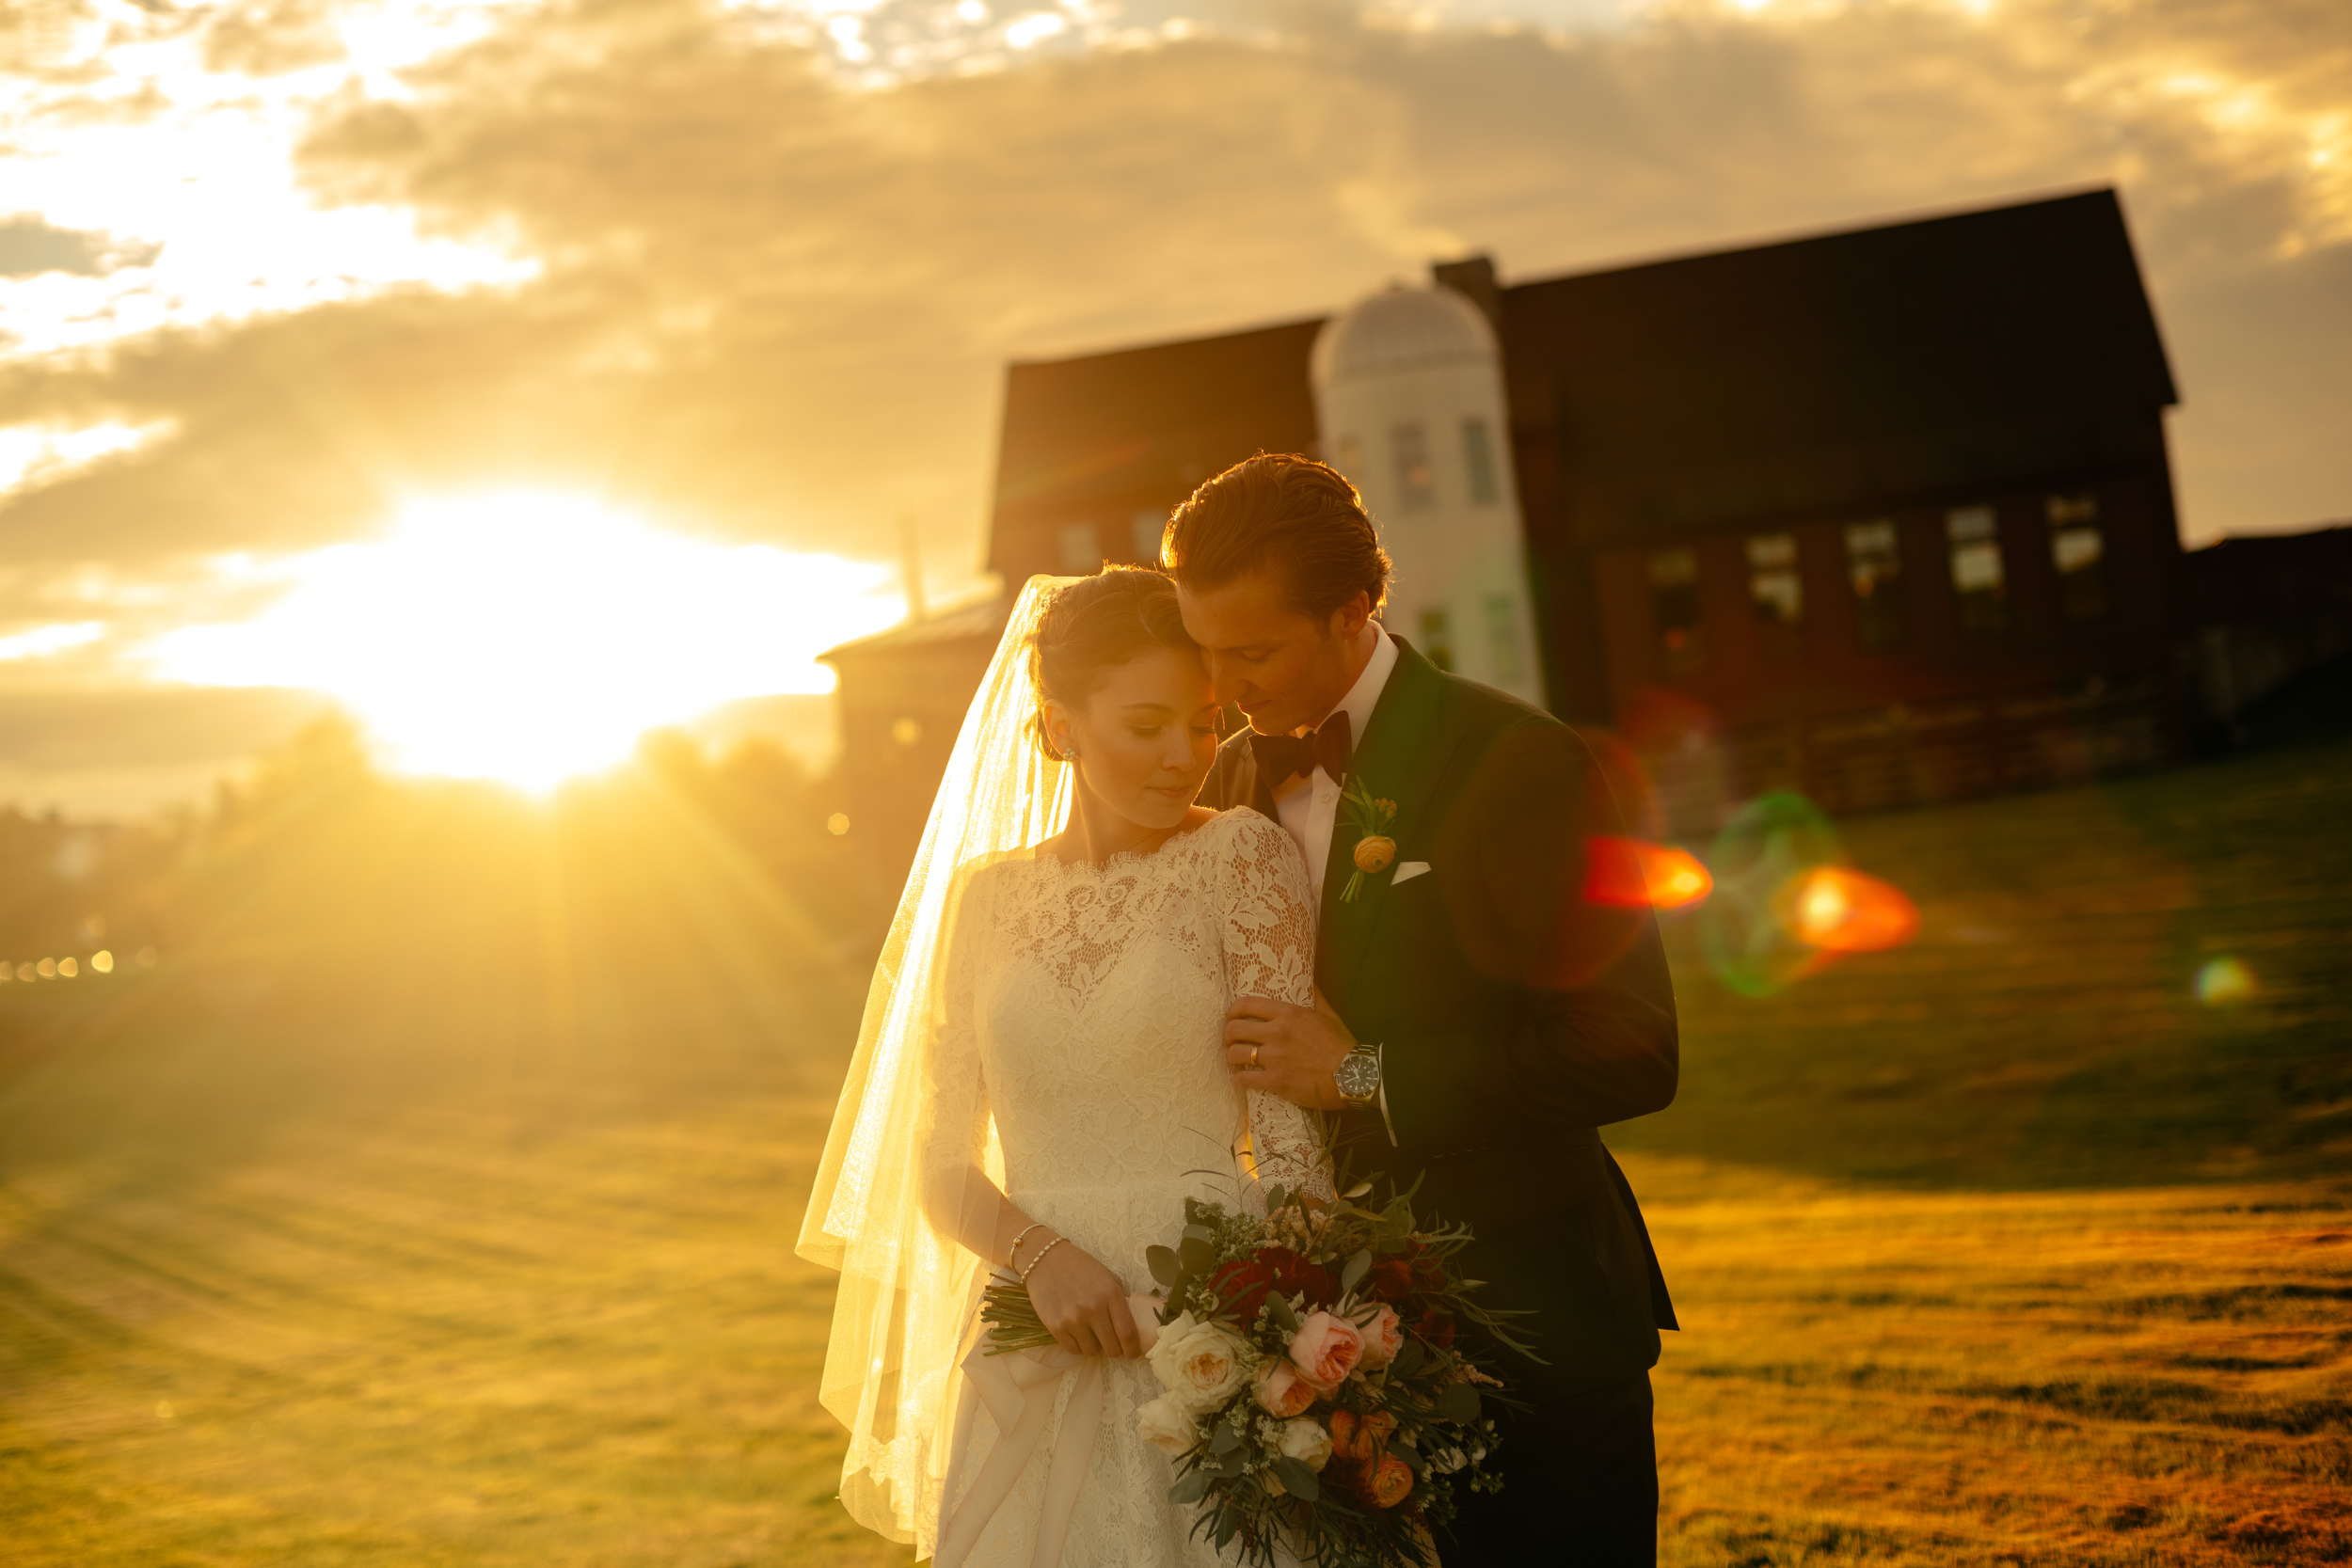 fall sunset wedding photos at gibbet hill for fall weddings and barn venue inspirations